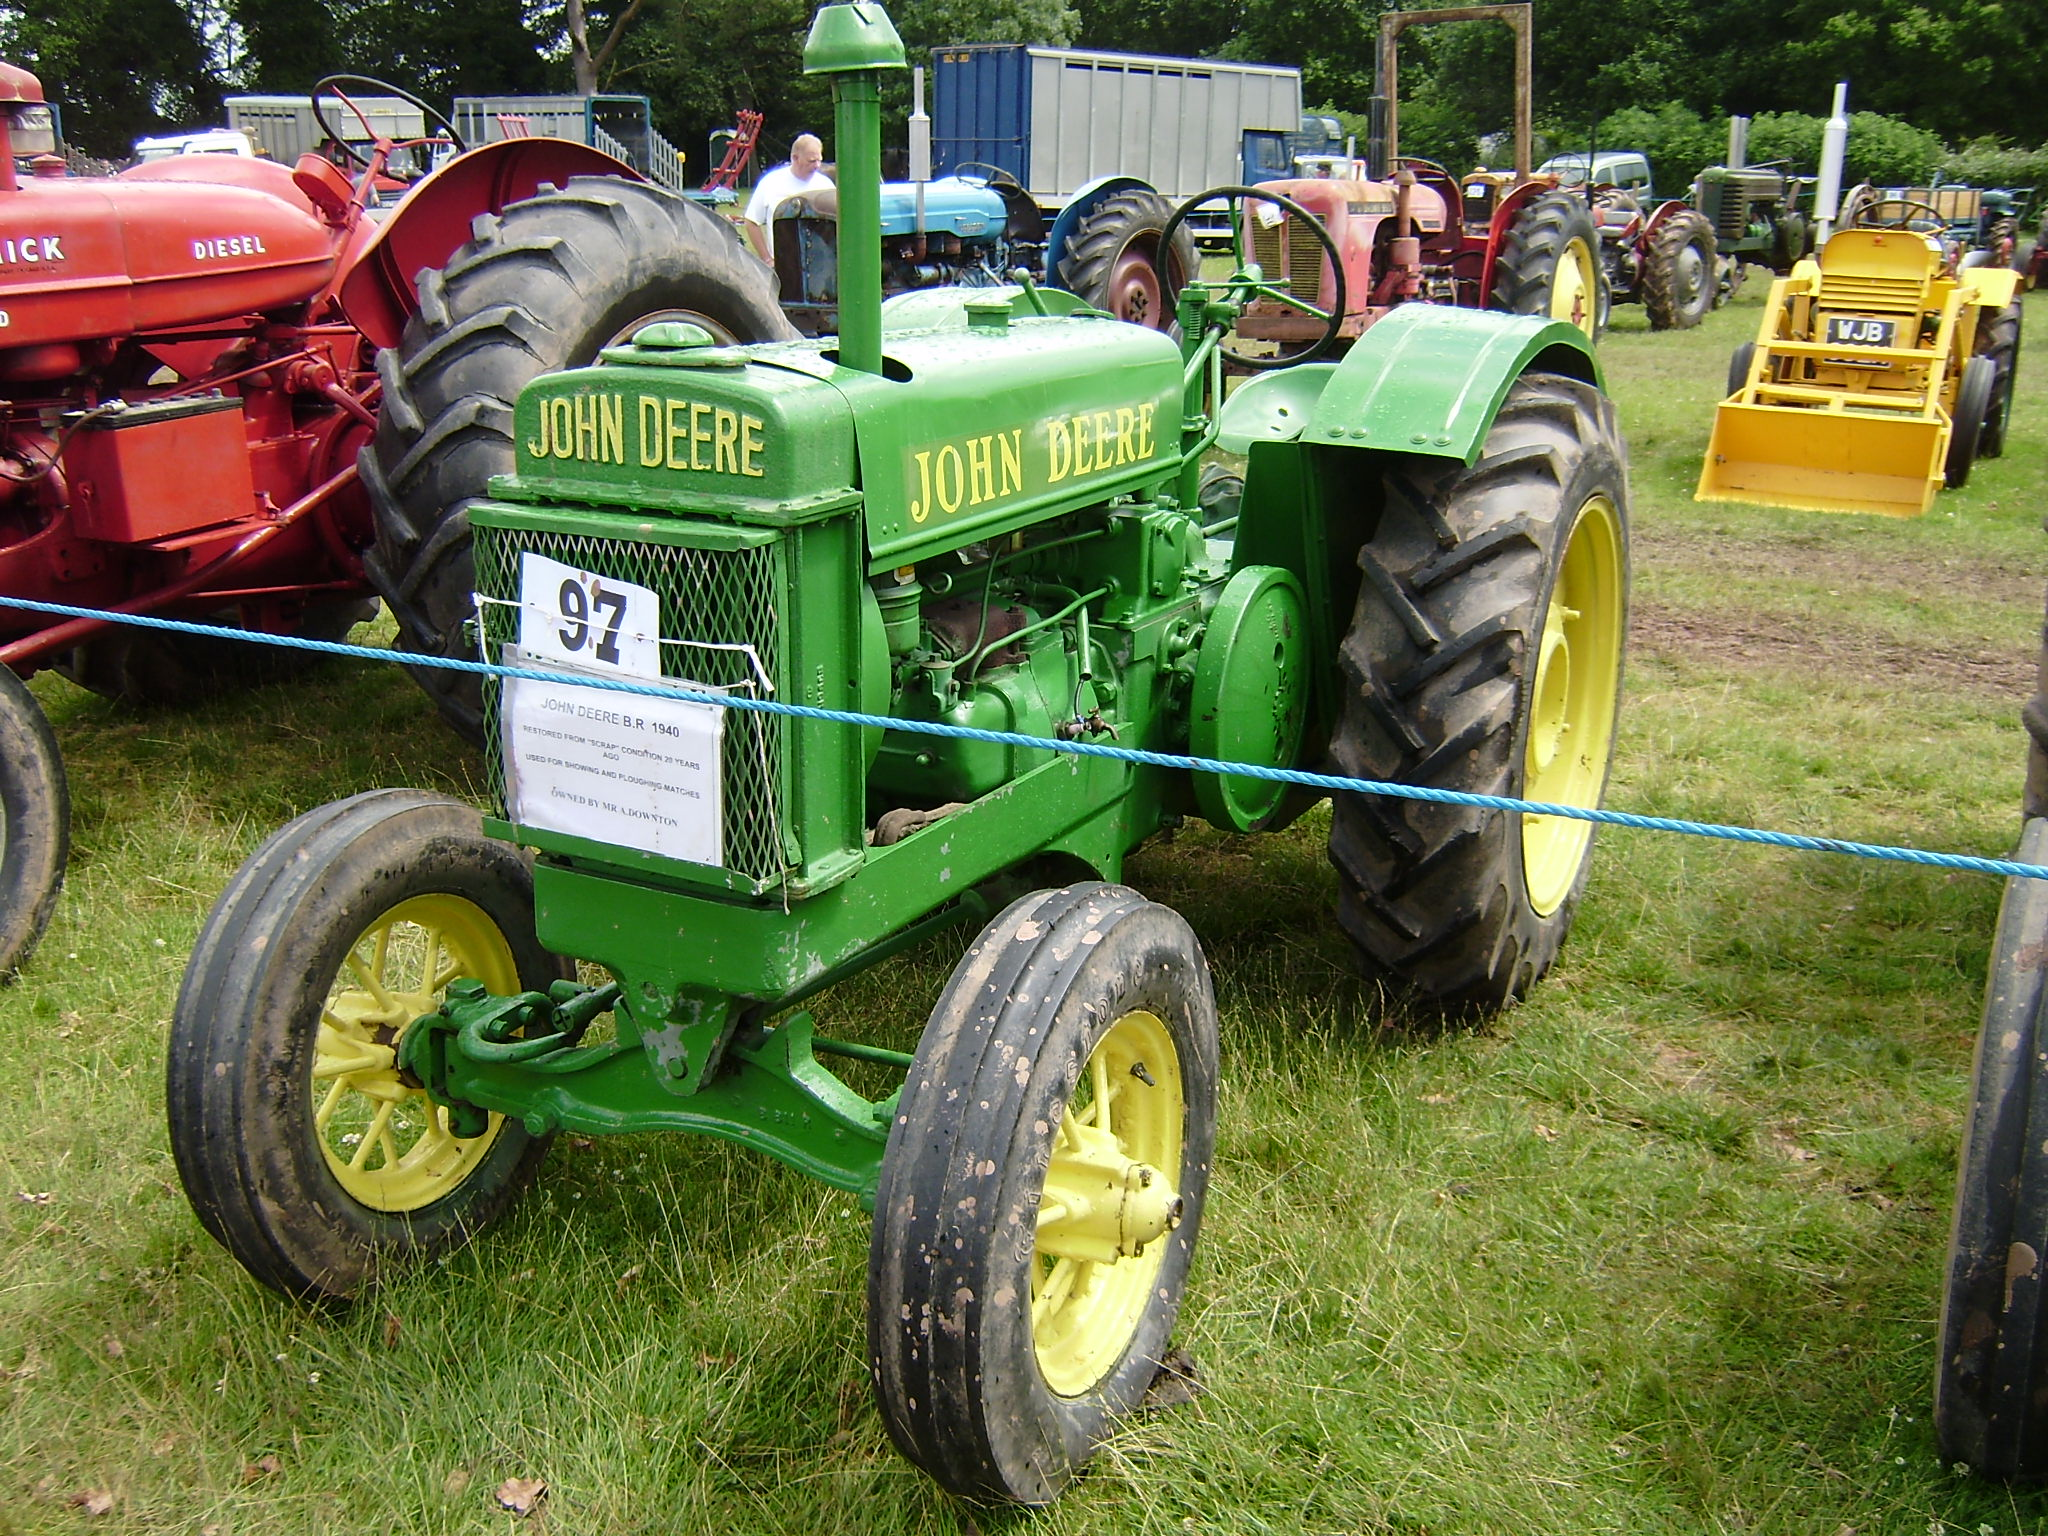 5325 John Deere Wiring Diagrams 5425 Solenoid Diagram List Of Tractors Tractor Construction Plant Wiki